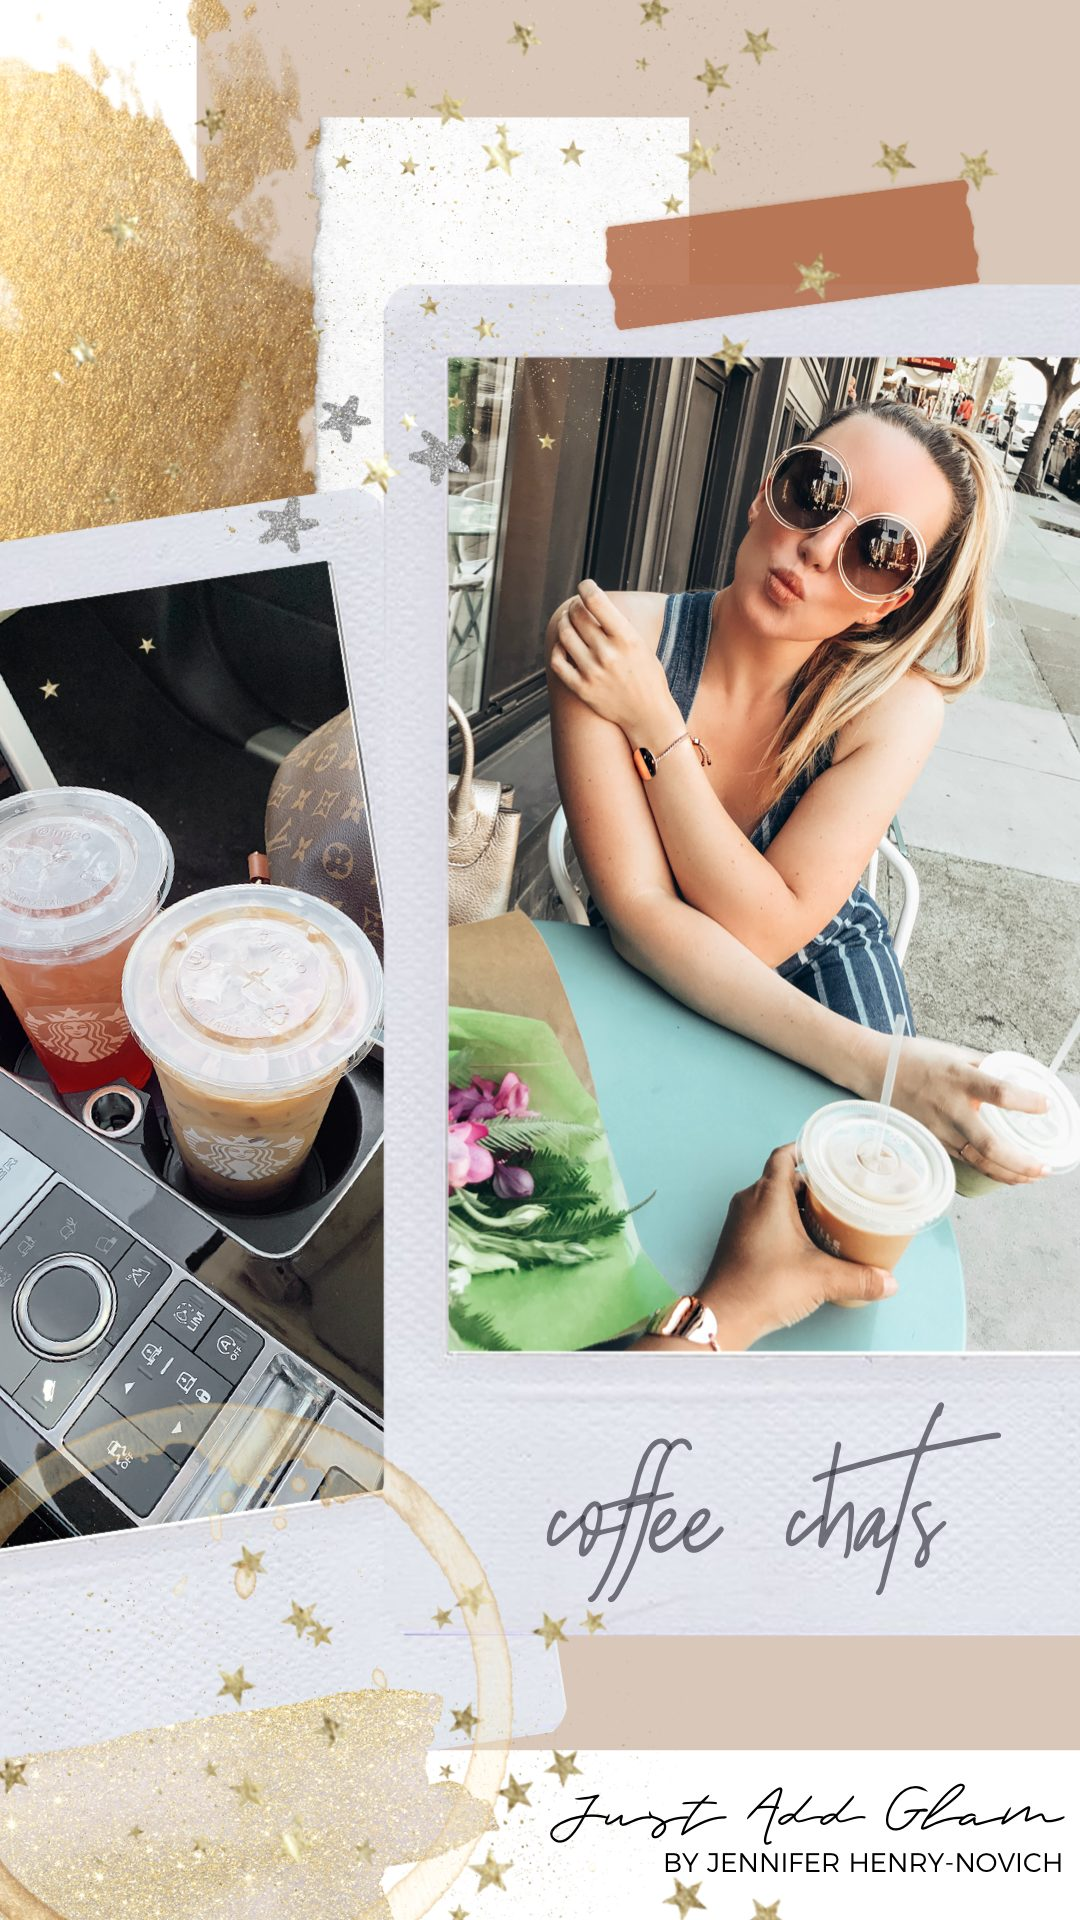 Personal Questions by popular San Francisco lifestyle blog, Just Add Glam: image of some polaroid pictures of a woman sitting down and drinking coffee. | Q&A Session by popular San Francisco lifestyle blog, Just Add Glam: image of two polaroid images of a woman drinking ice coffees.